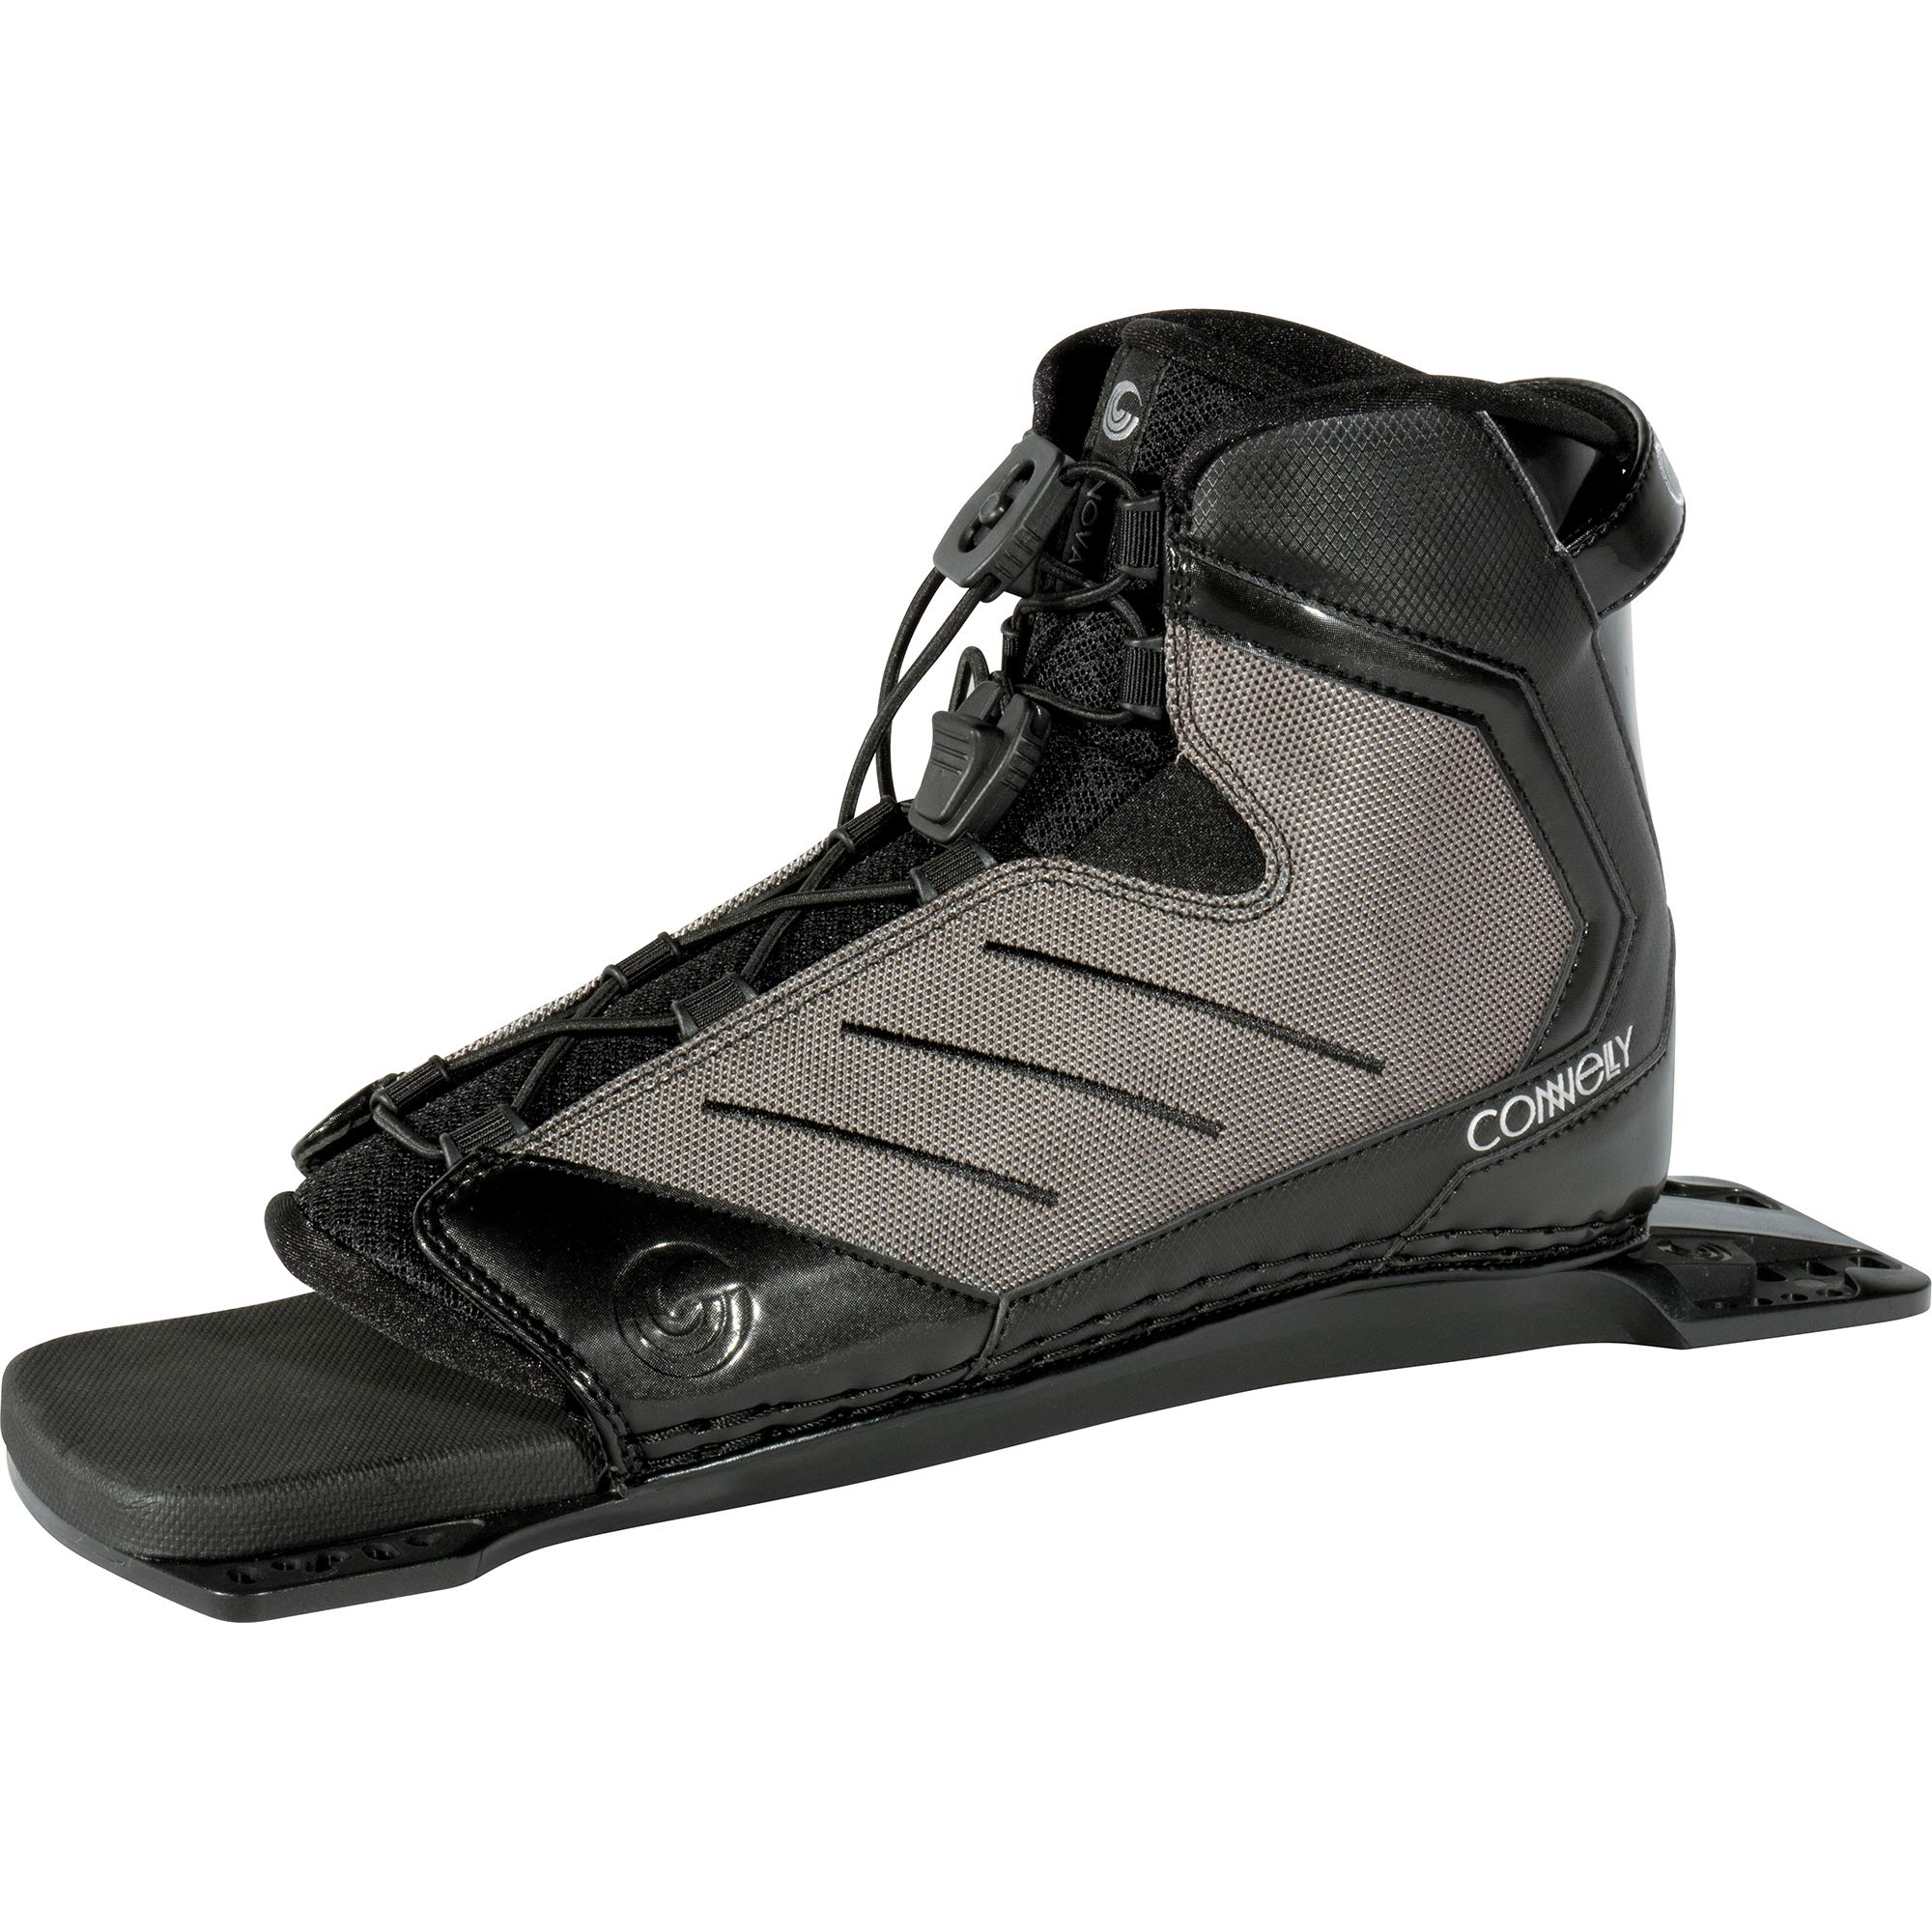 Connelly Shadow Rear Waterski Binding (L/XL) by Connelly (Image #1)